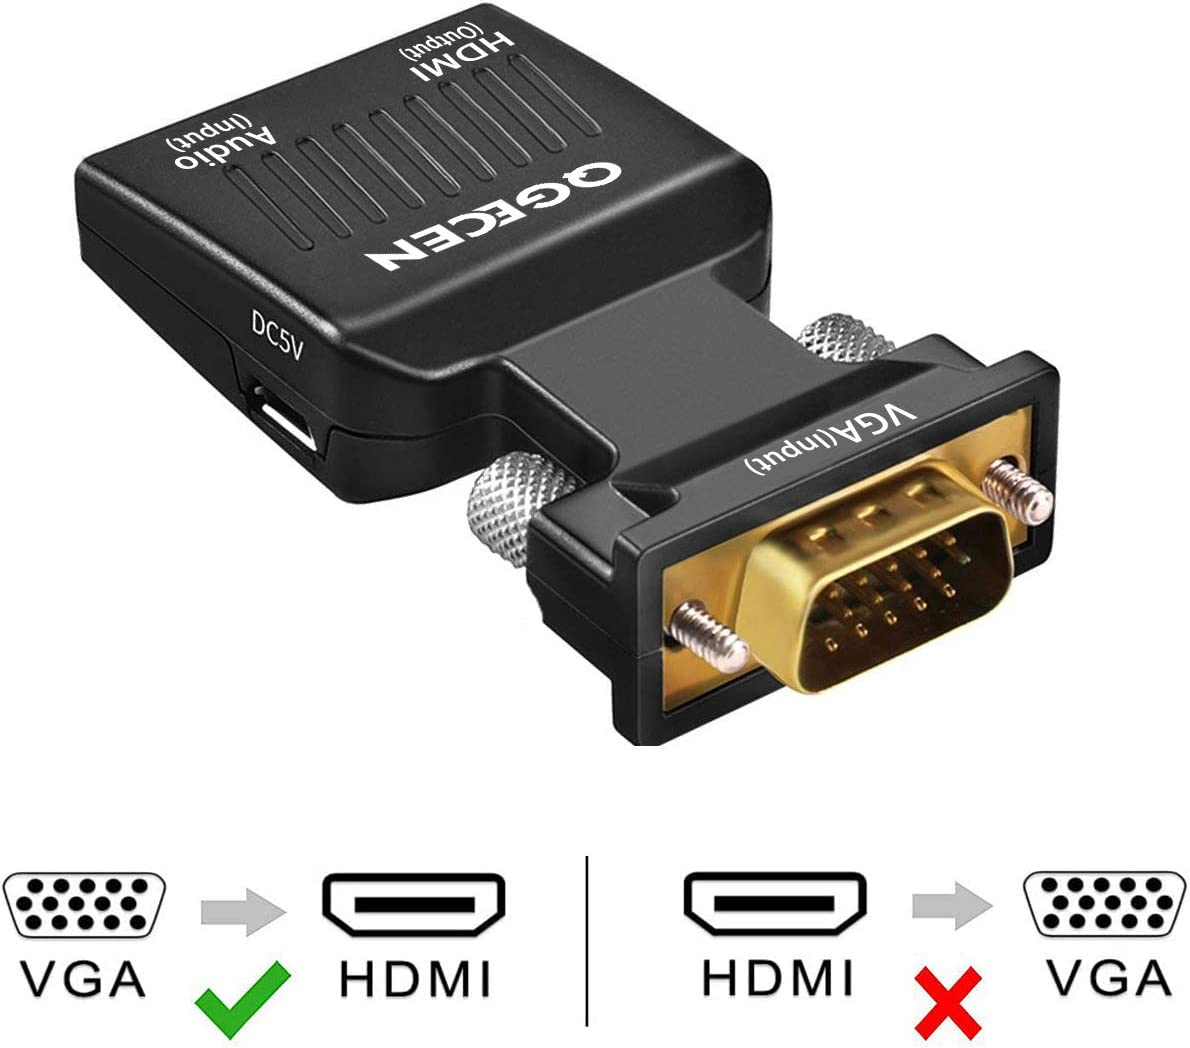 VGA to HDMI Adapter, QGECEN 1080p VGA Male to HDMI Female Video Audio Converter with USB Cable and 3.5mm Audio Cable for ASUS Dell Acer PC Monitor Projector TV